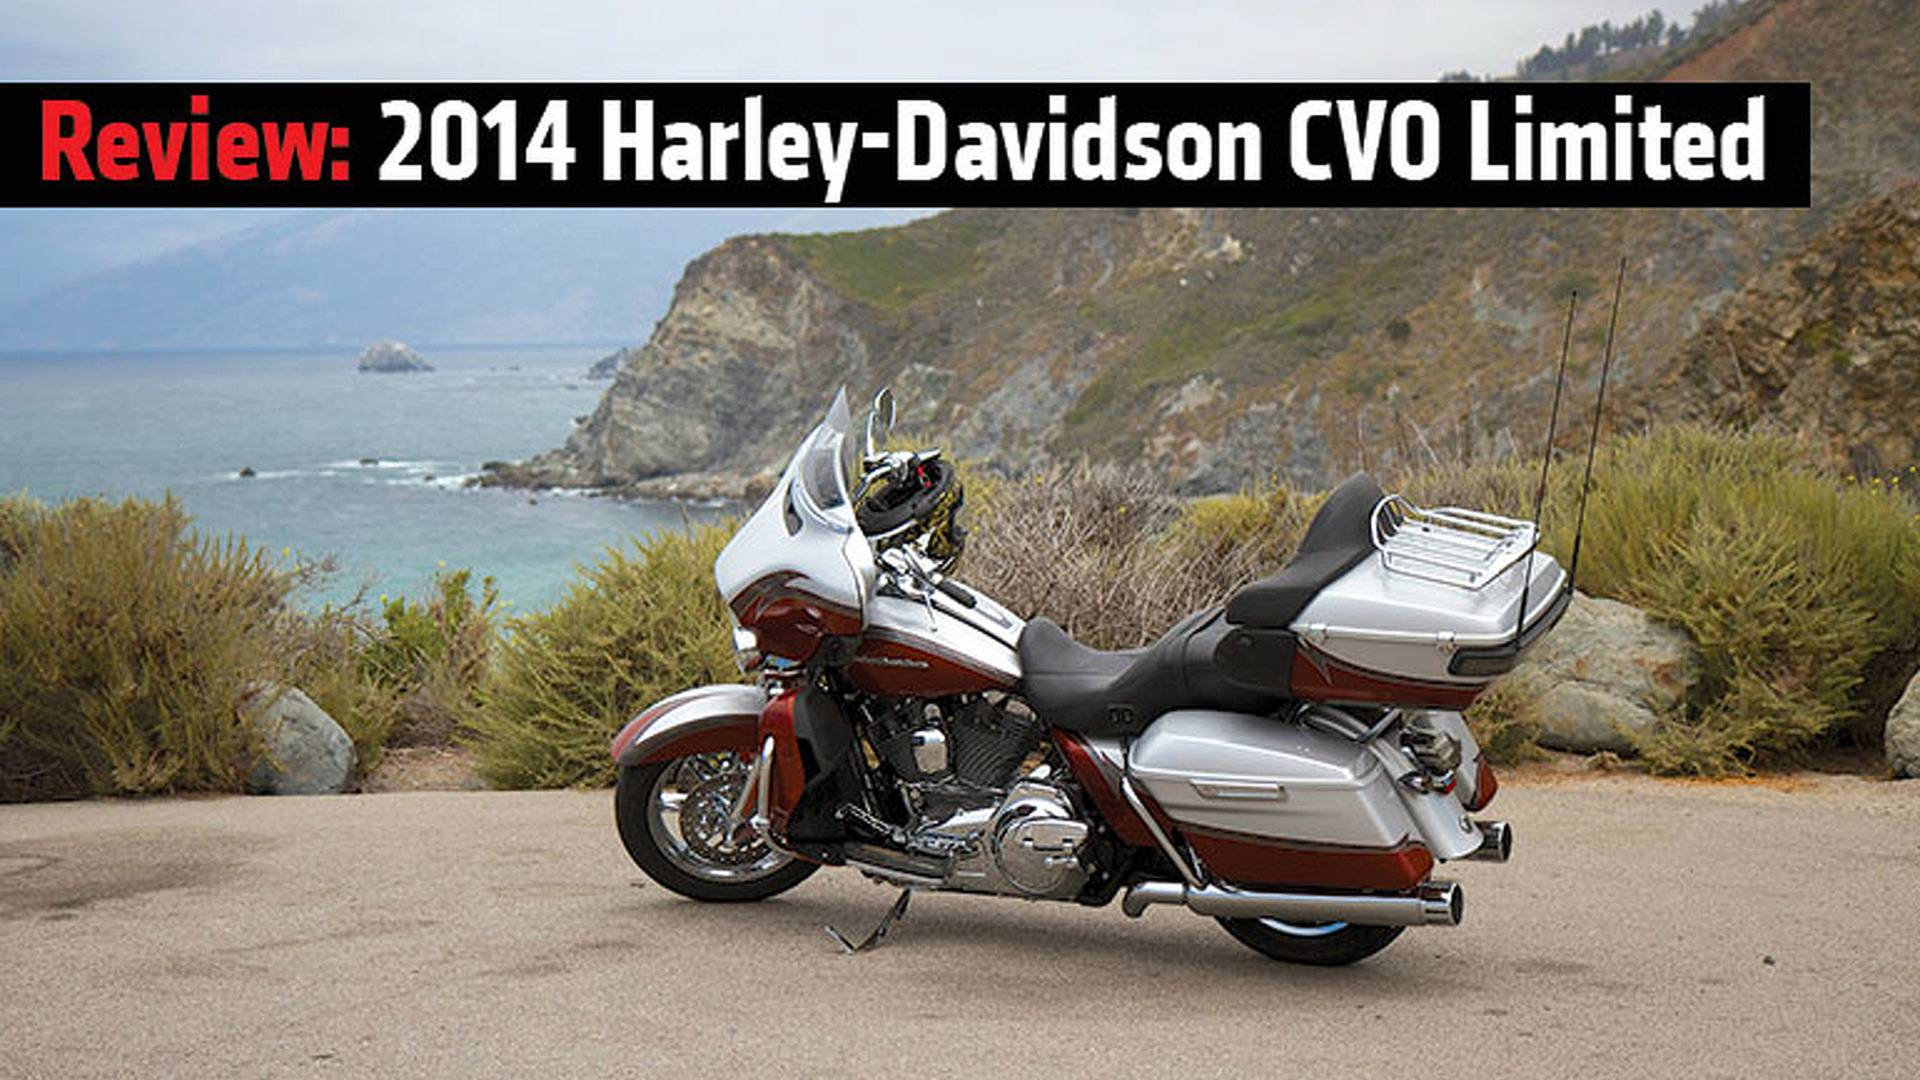 Review 2014 Harley Davidson Cvo Limited 2015 Tour Pack